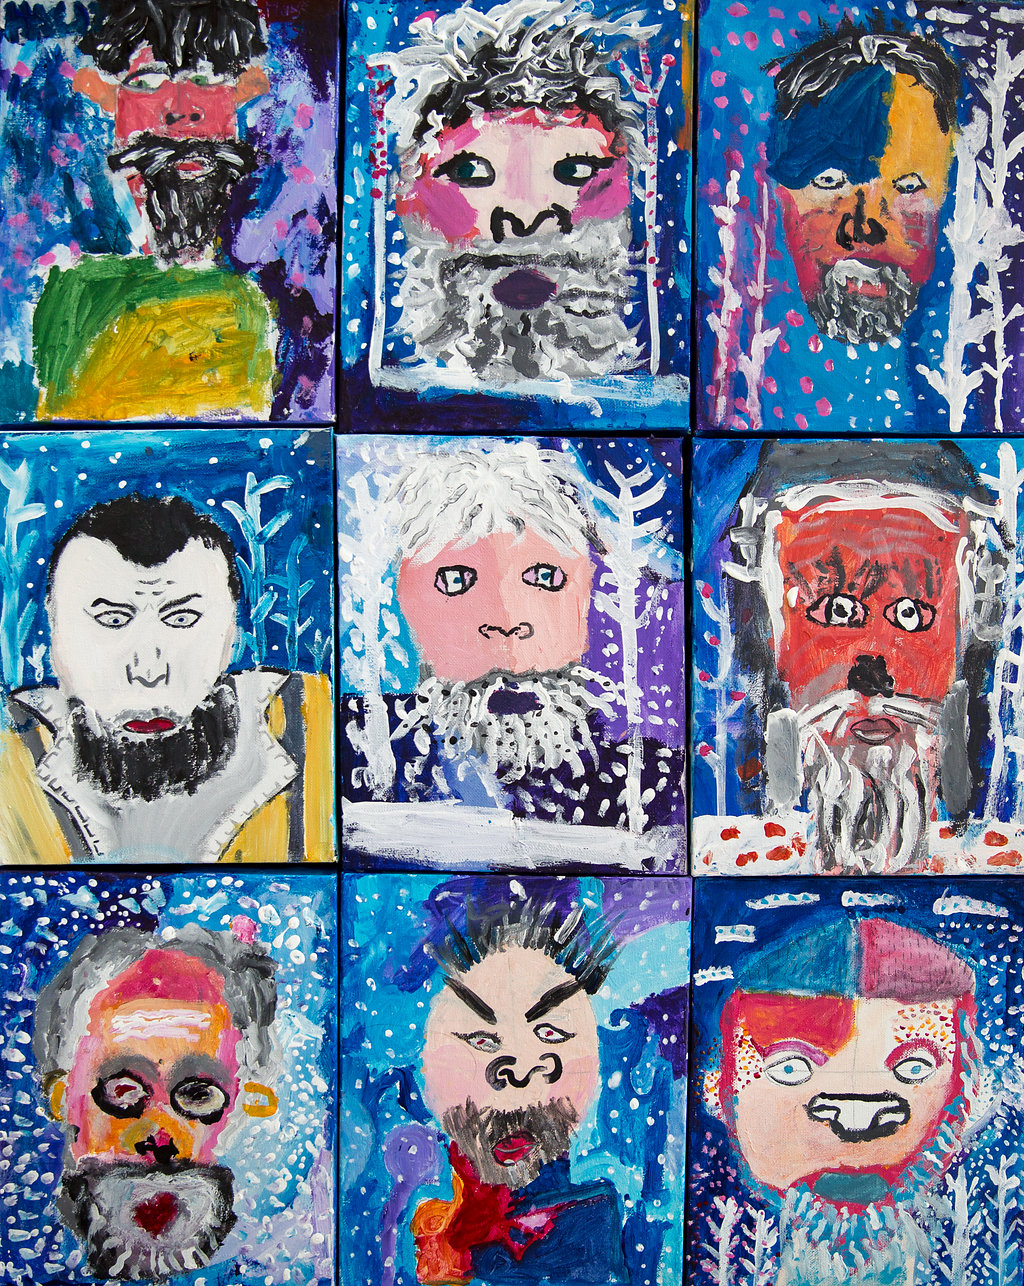 Portraits of the Selfish Giant by Y5 St Cuthbert with St Matthias CE Primary School Kensington and Chelsea